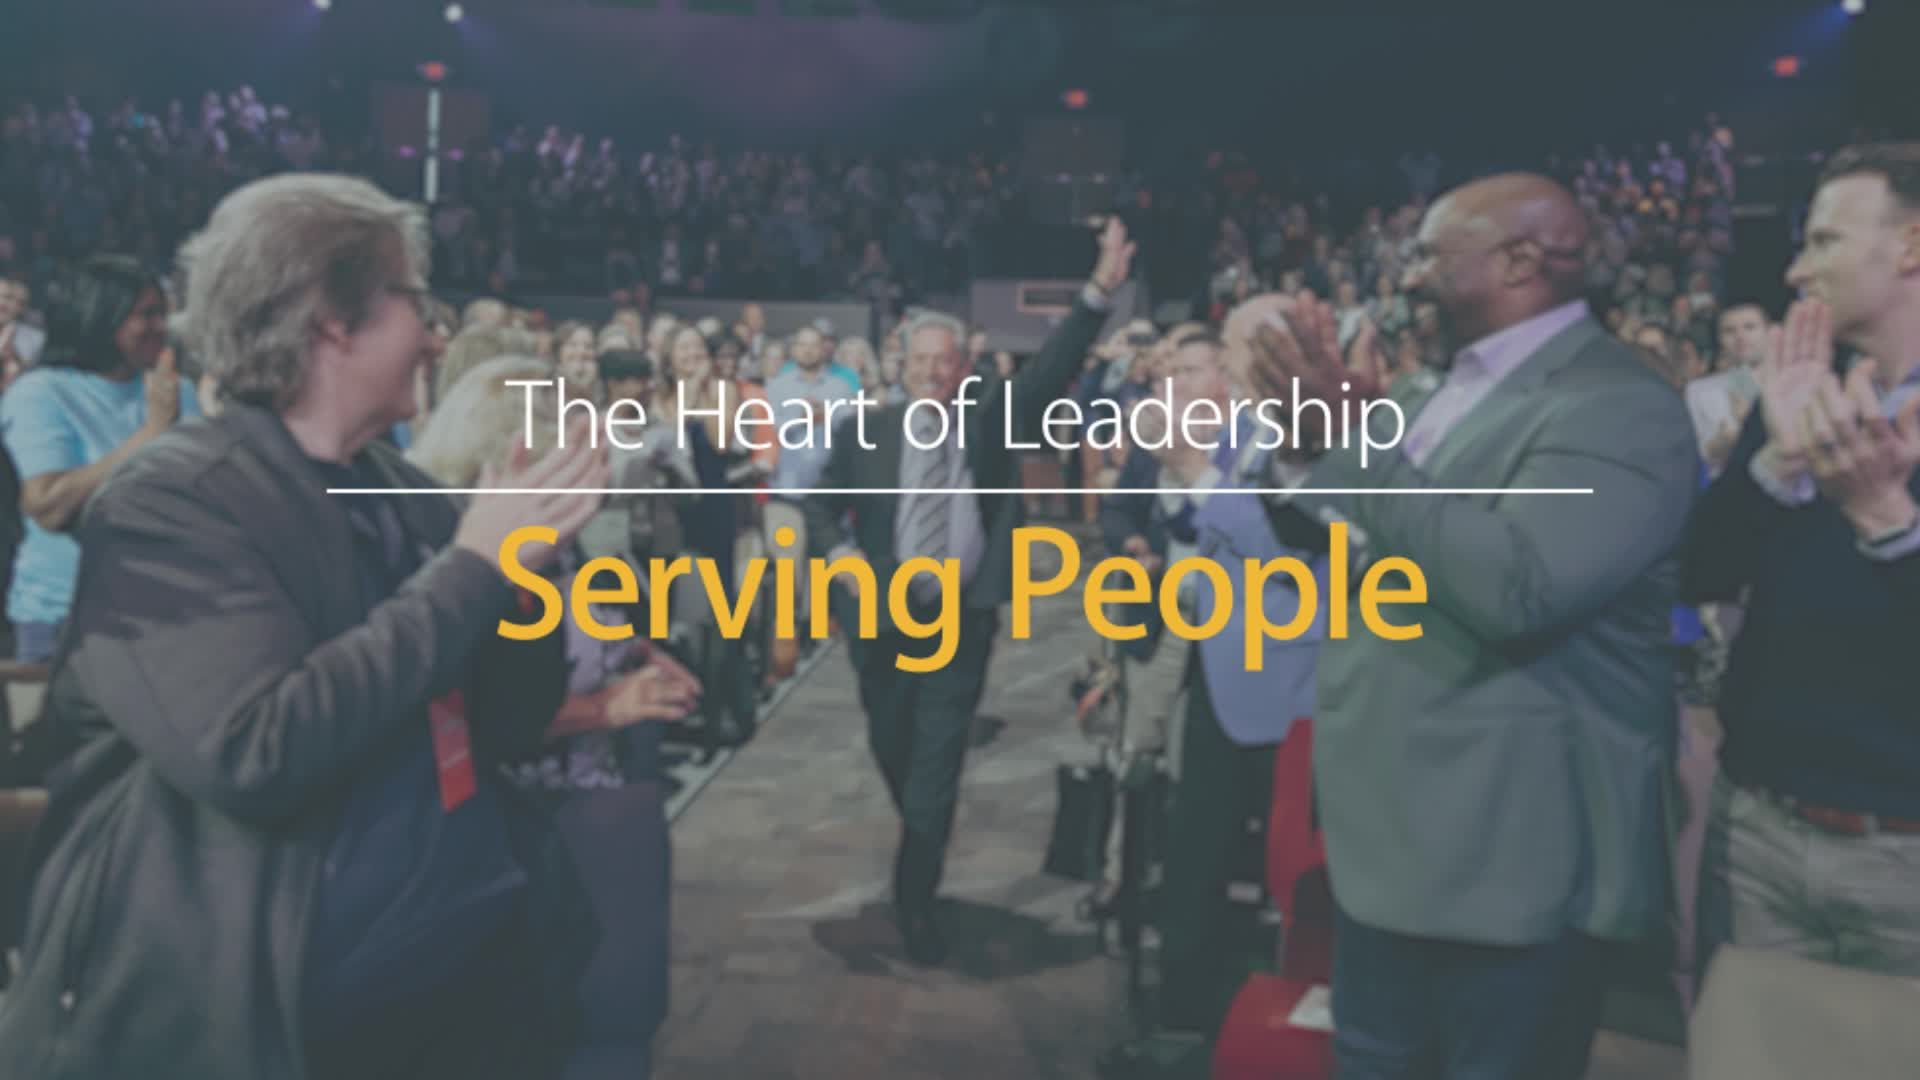 The Heart of Leadership - Serving People